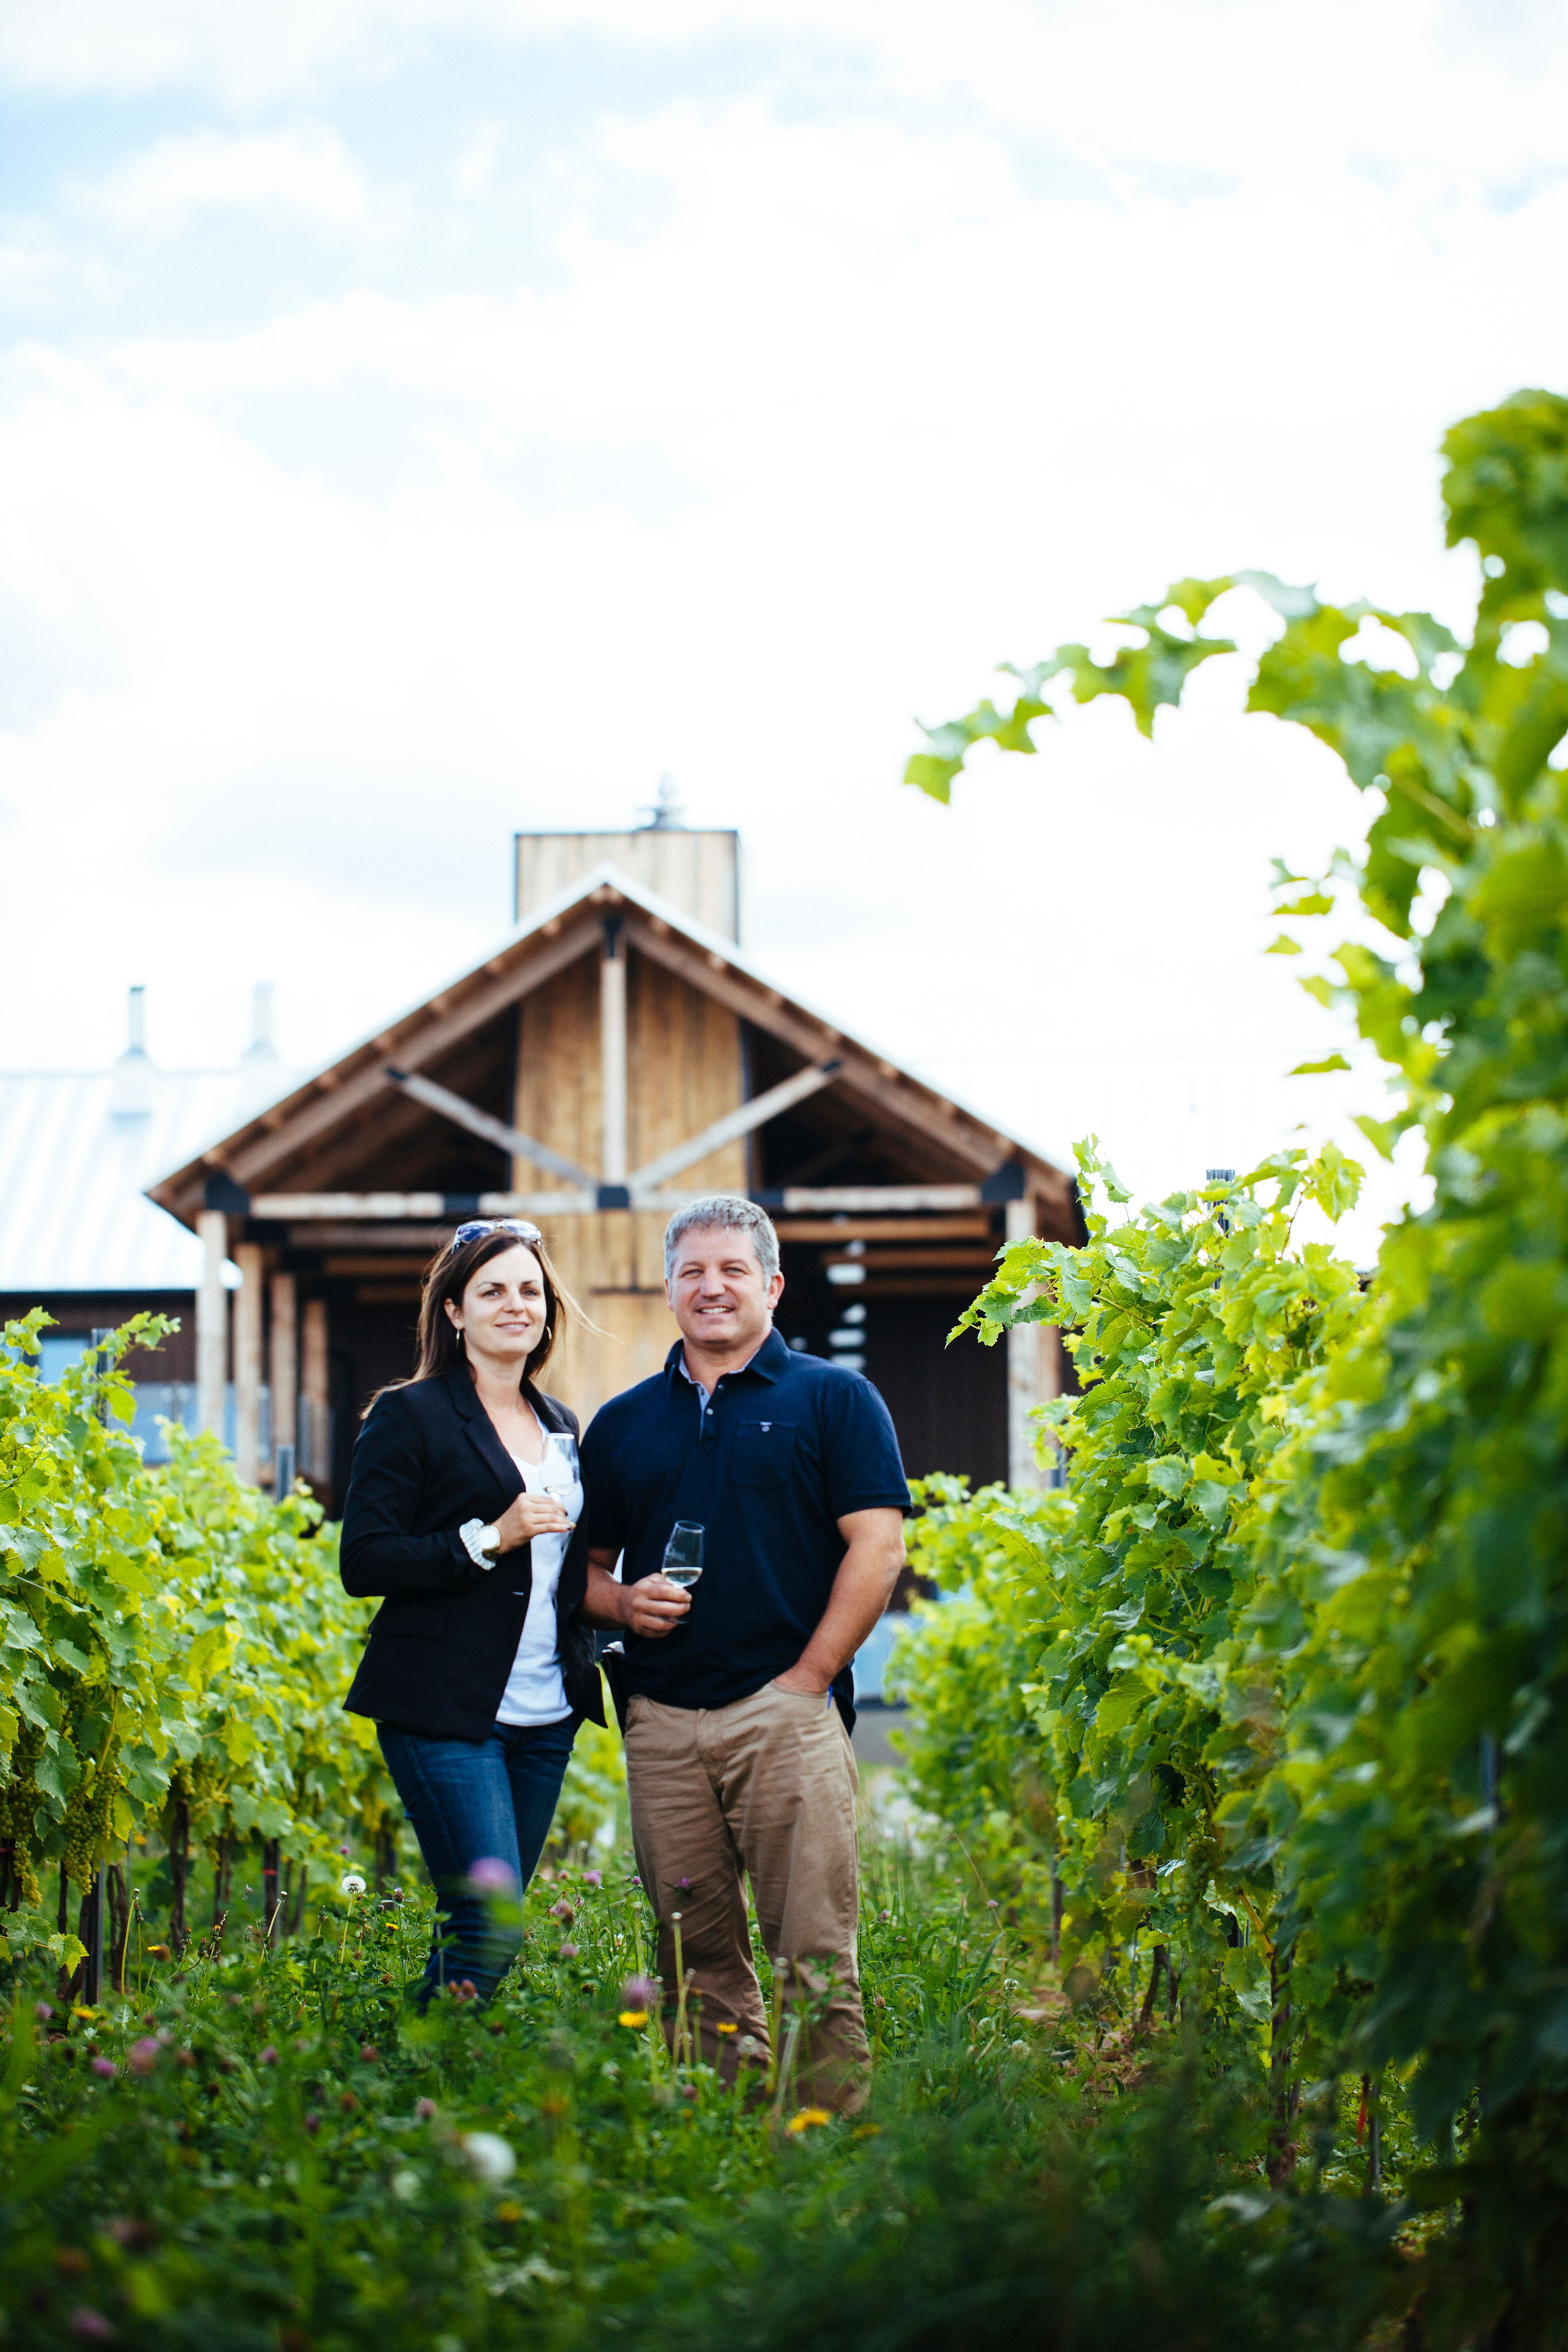 Saltwire foodie and sommelier Mark DeWolf applauds the commitment of Mike and Jocelyn Lightfoot (pictured) of Lightfoot & Wolfville to sustainable agriculture. Photo: Perry Jackson